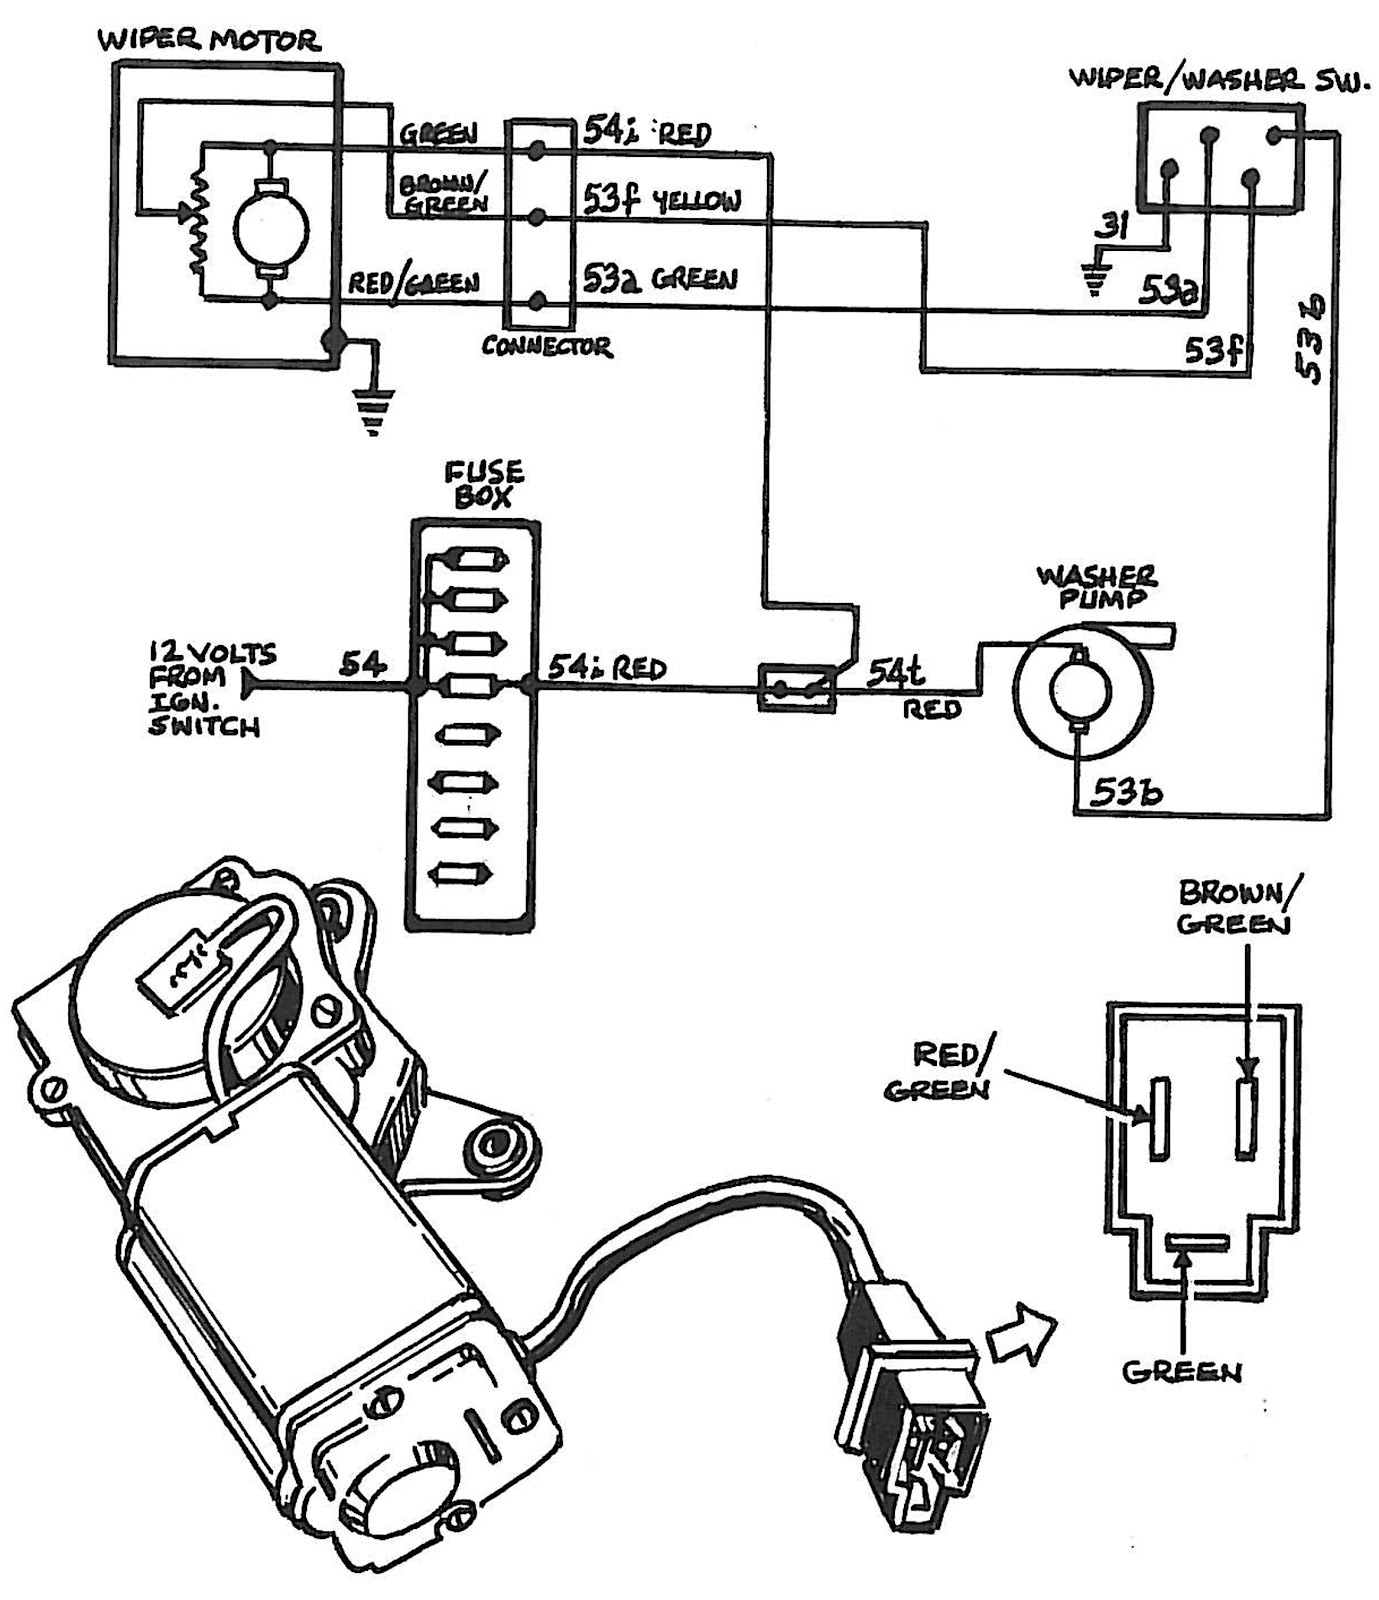 Chevrolet Wiper Wiring Diagram on 1998 jaguar xj8 fuse box diagram